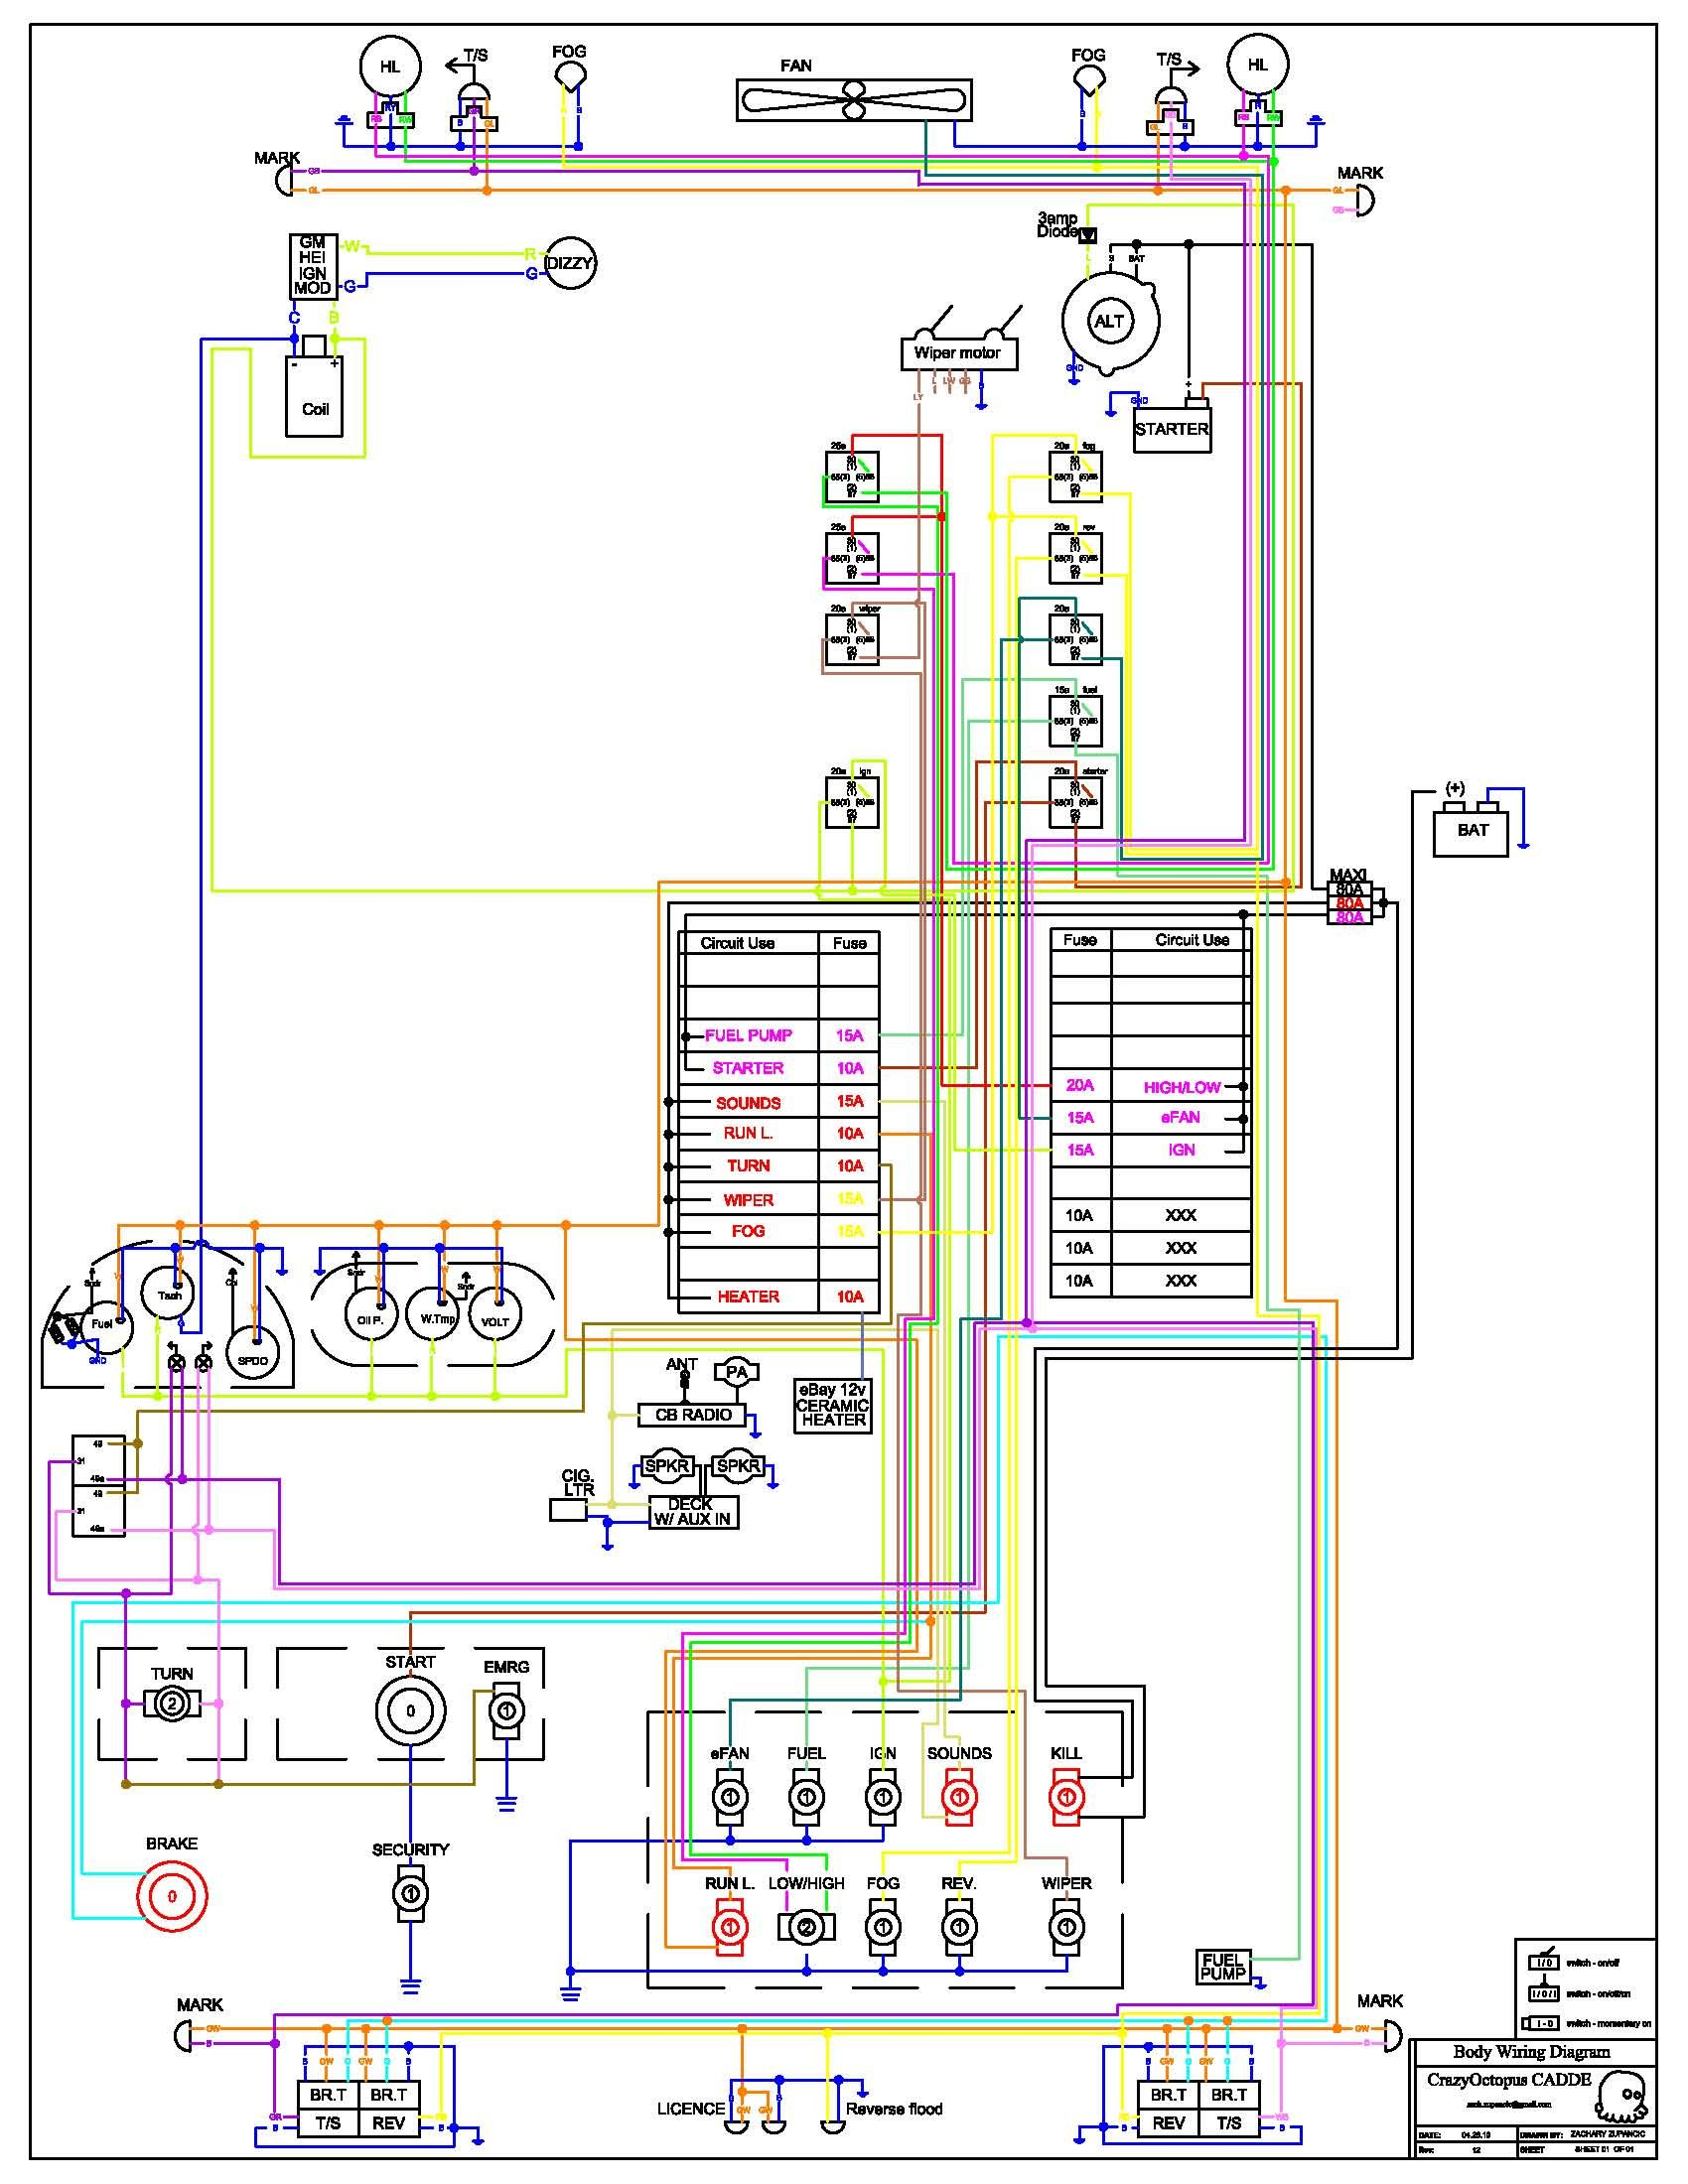 Race Car Wiring Diagrams Diagram, Race Cars, Ram Cars